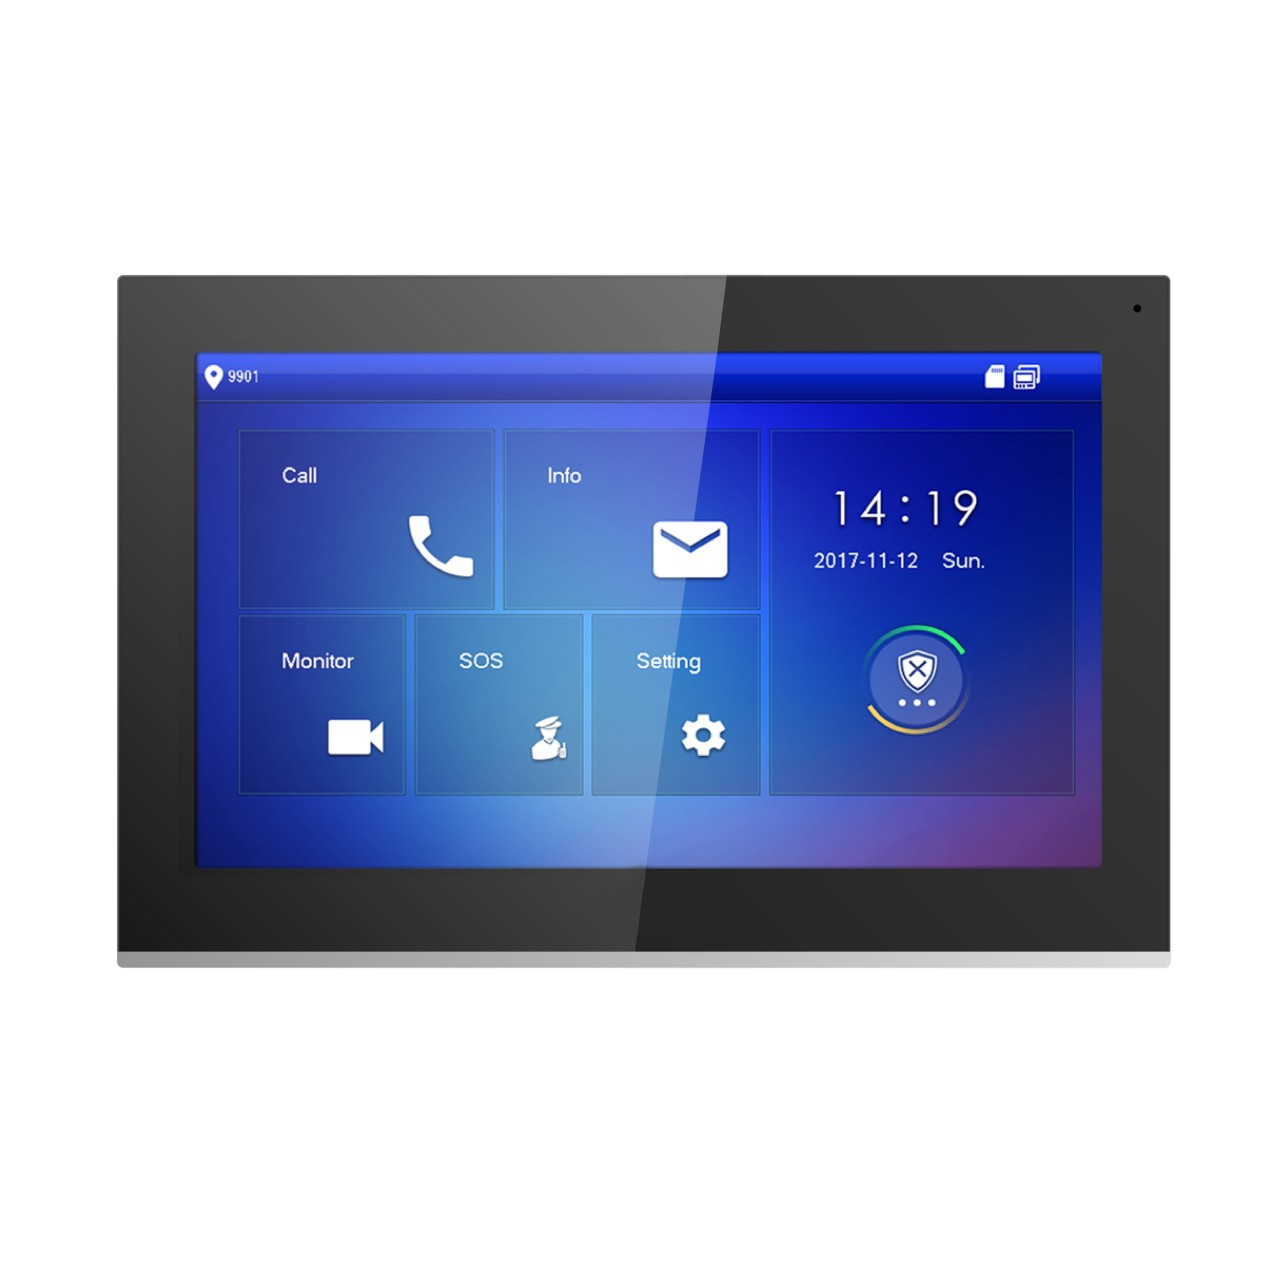 "TURM IP Video Türsprechanlage 10"" Touchscreen Innenstation LCD Monitor in schwarz"